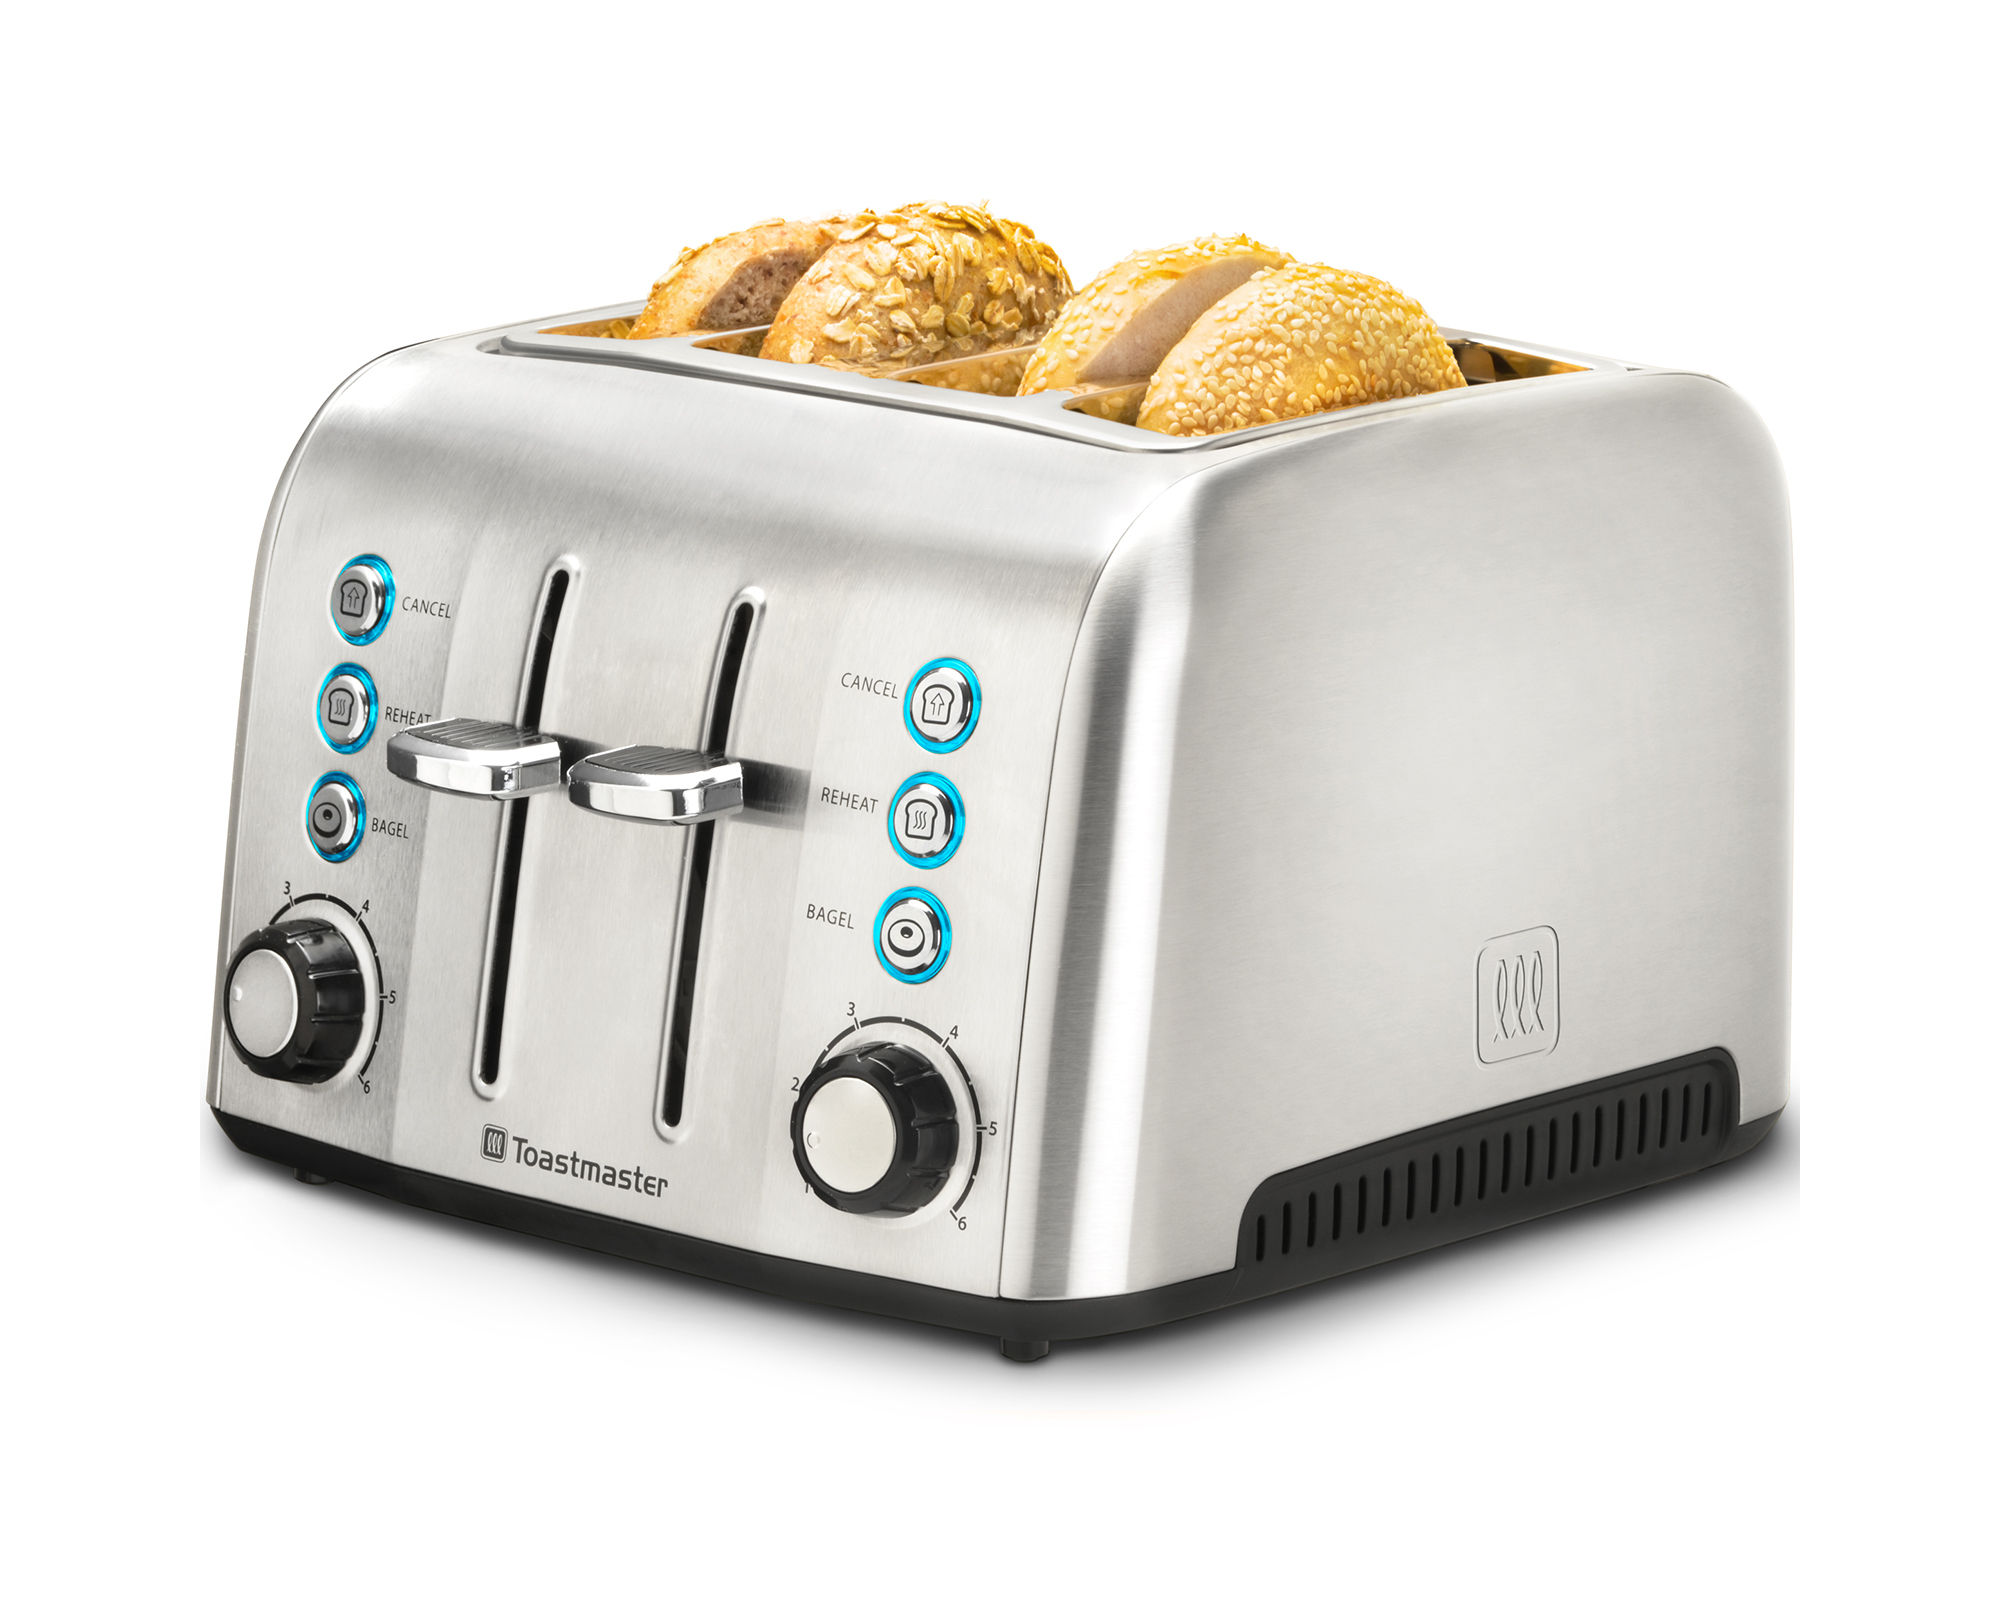 Toaster Sandwich Maker Toastmaster Cool Touch Toaster